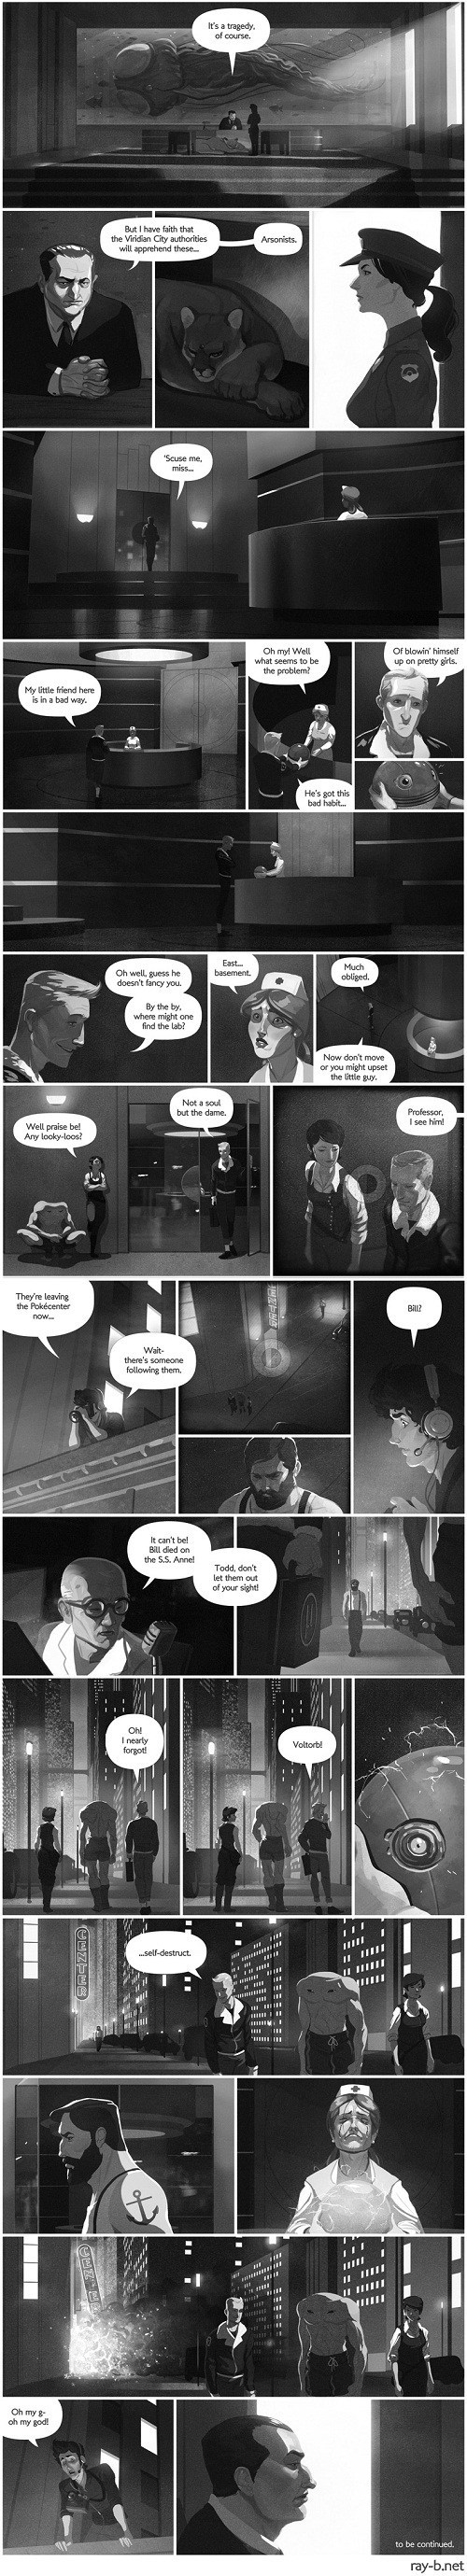 Pokémon,voltorb,todd snap,self destruct,comic,noir